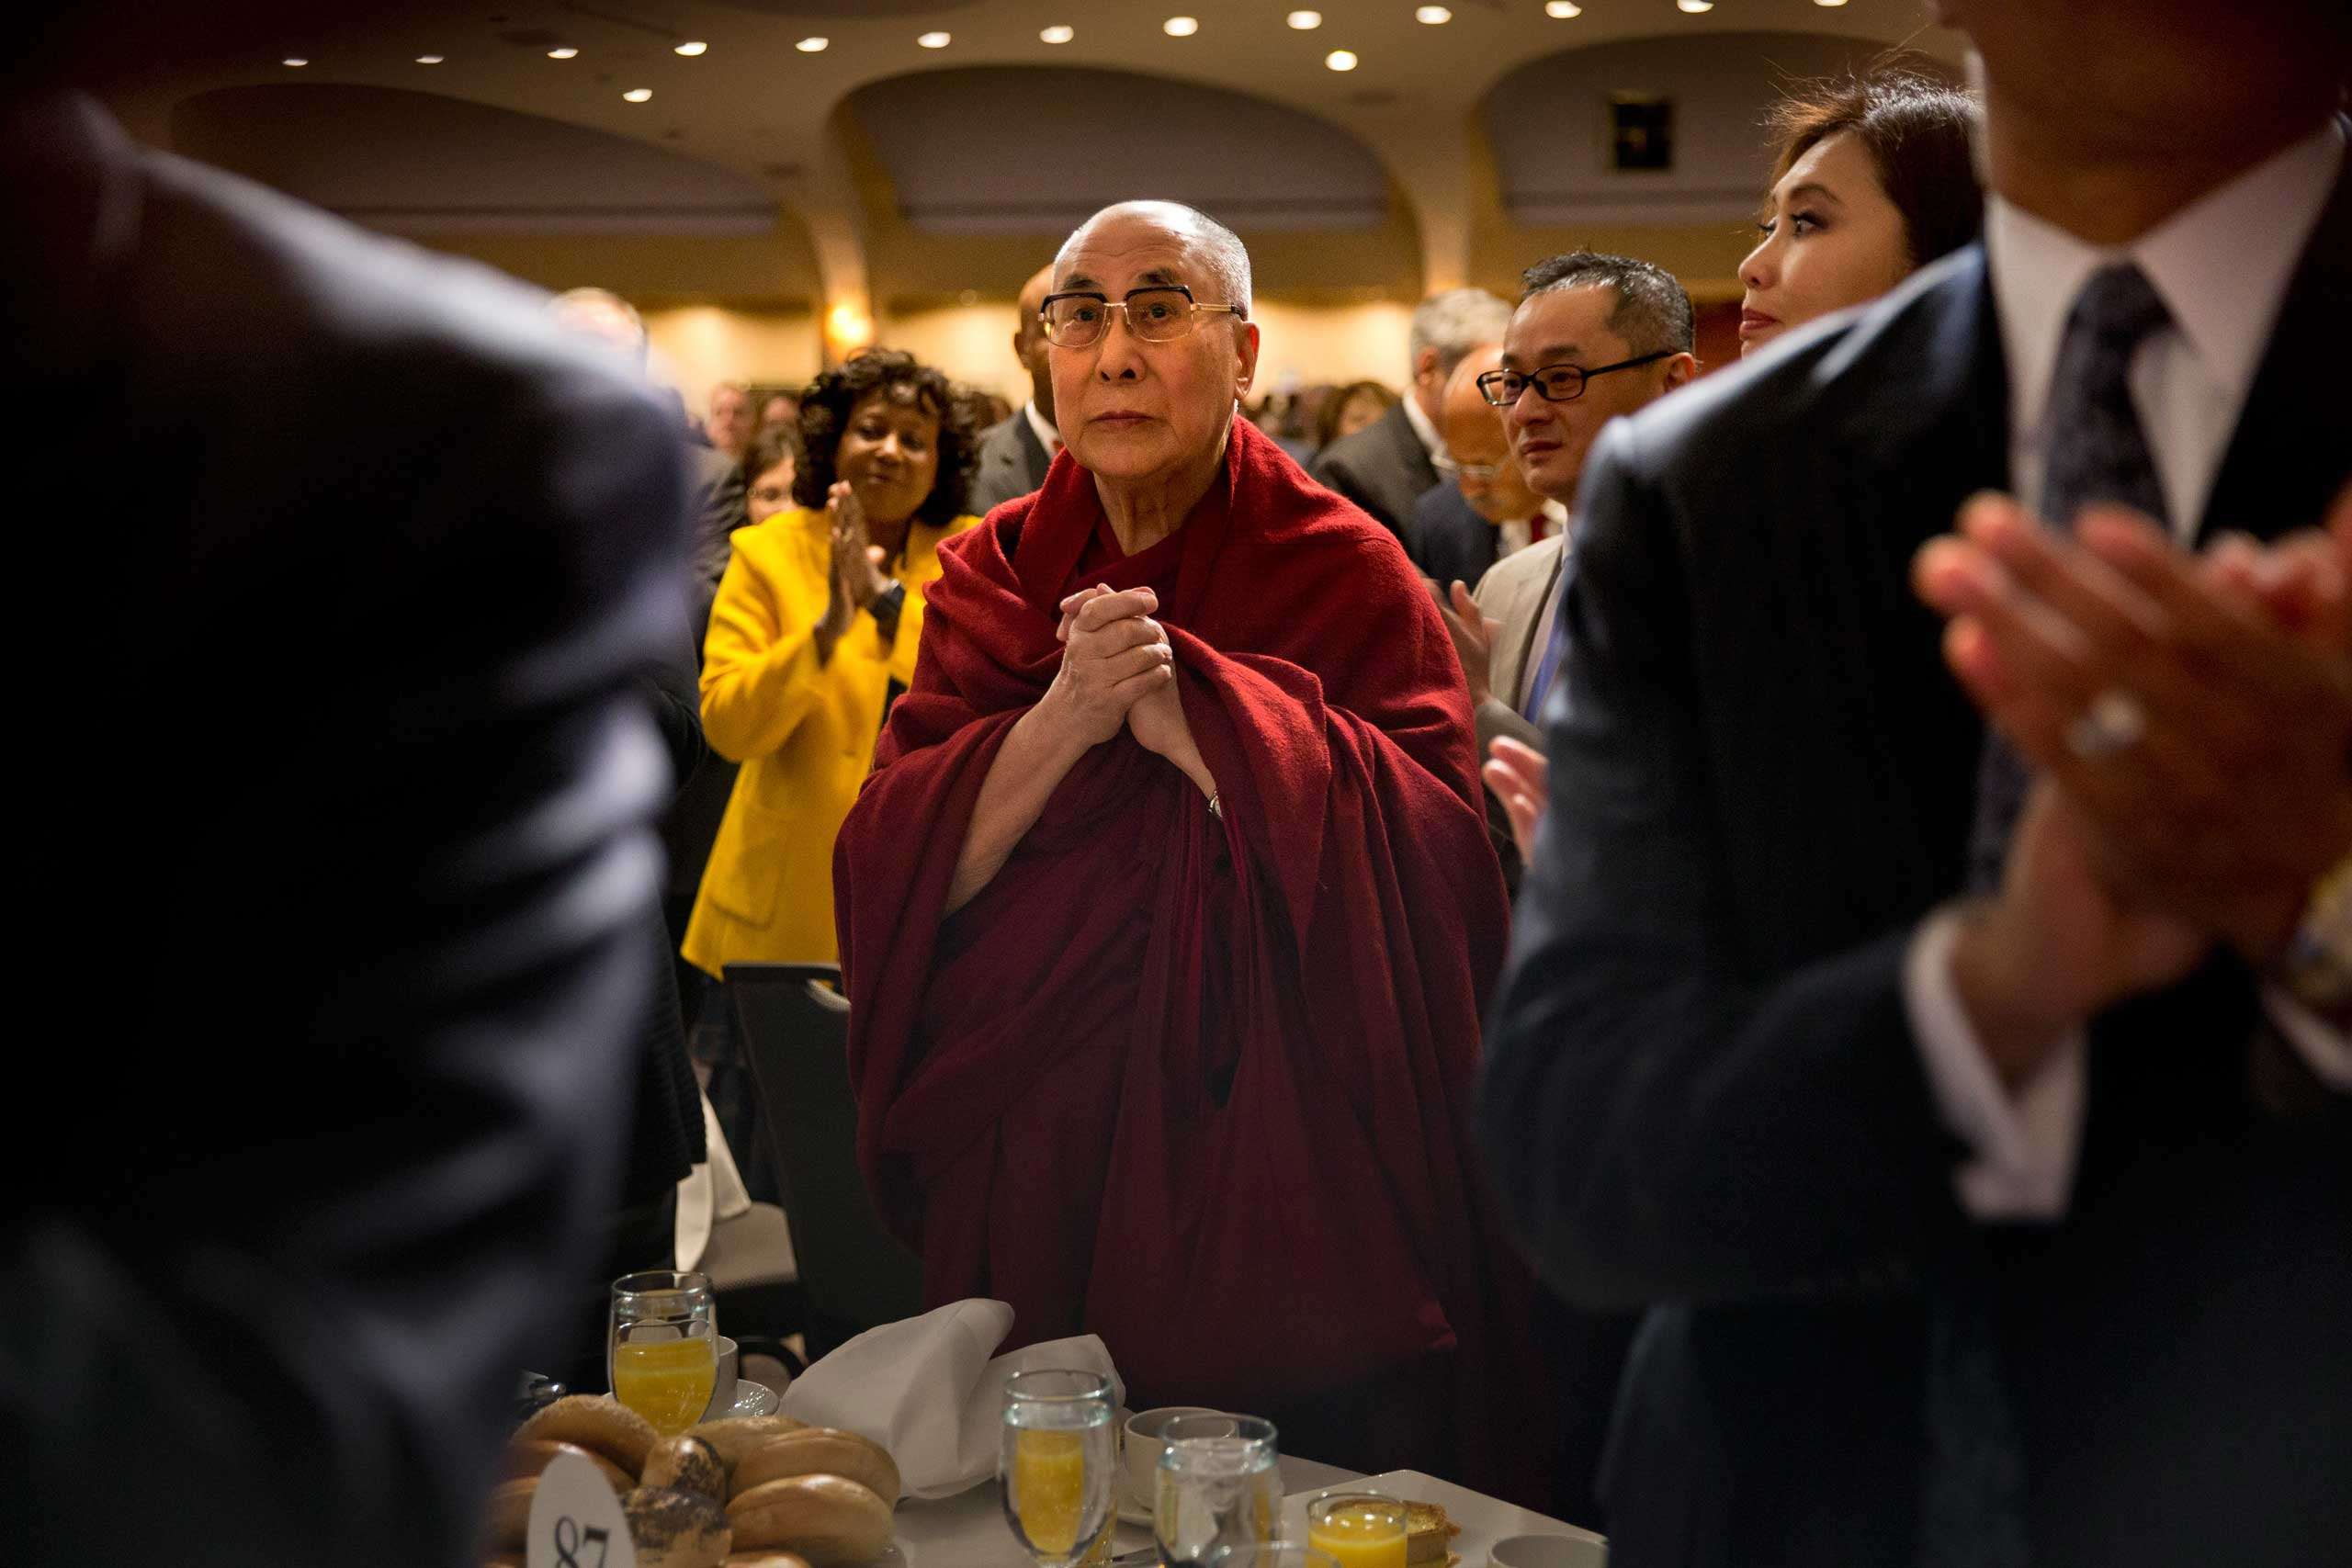 The Dalai Lama stands at the National Prayer Breakfast in Washington, D.C., in February 2015.